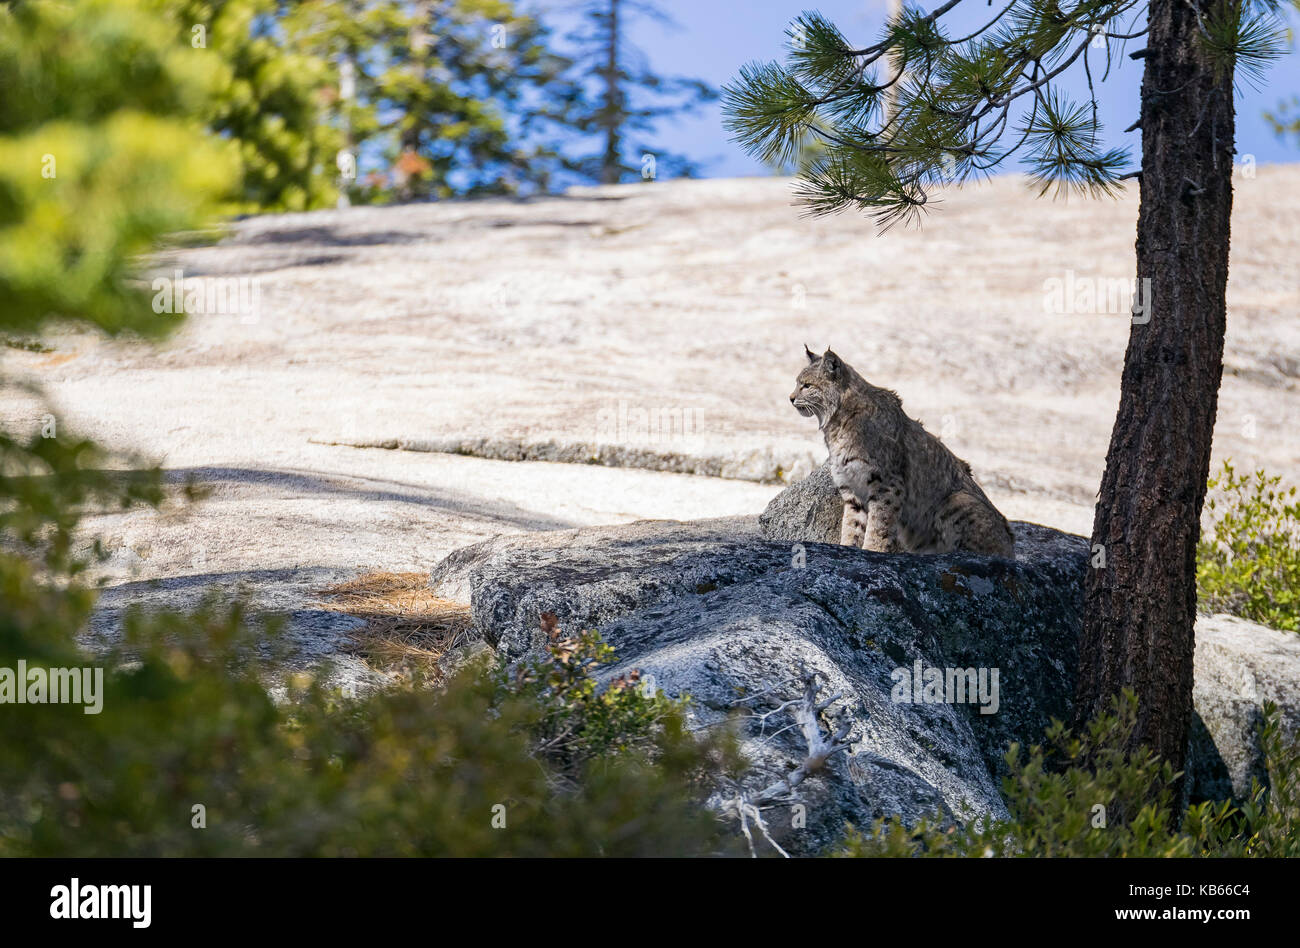 Undomesticated Cat sitting on a rock in a rural place - Stock Image